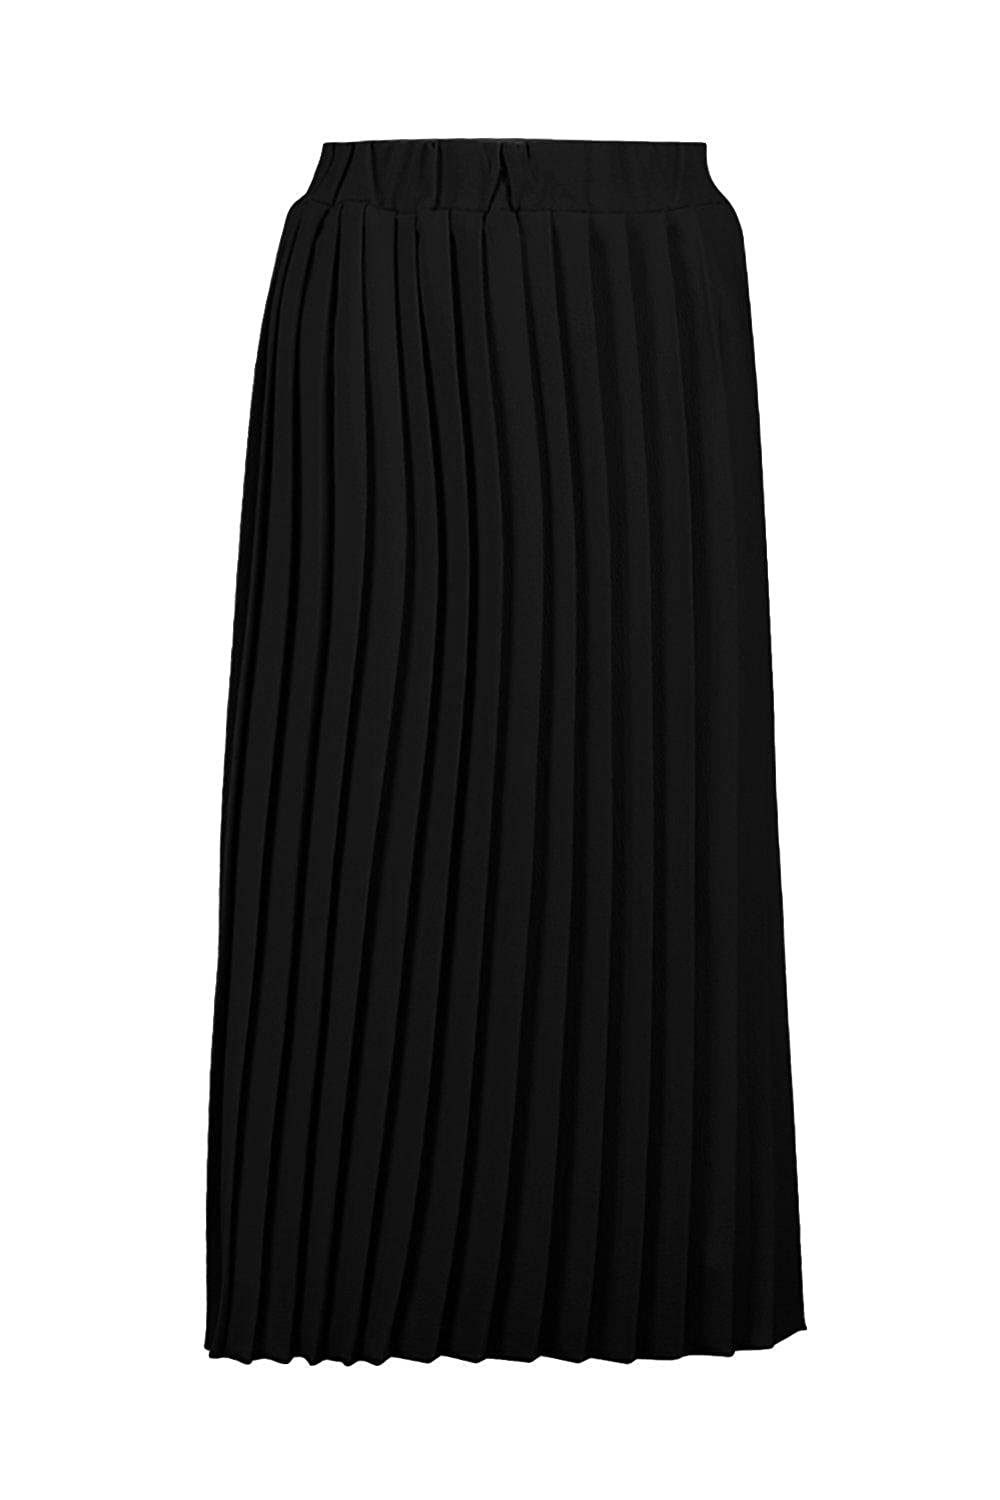 fcc6b6680 Boohoo Womens Neave Textured Crepe Pleated Midi Skirt in Black size 4:  Amazon.ca: Clothing & Accessories